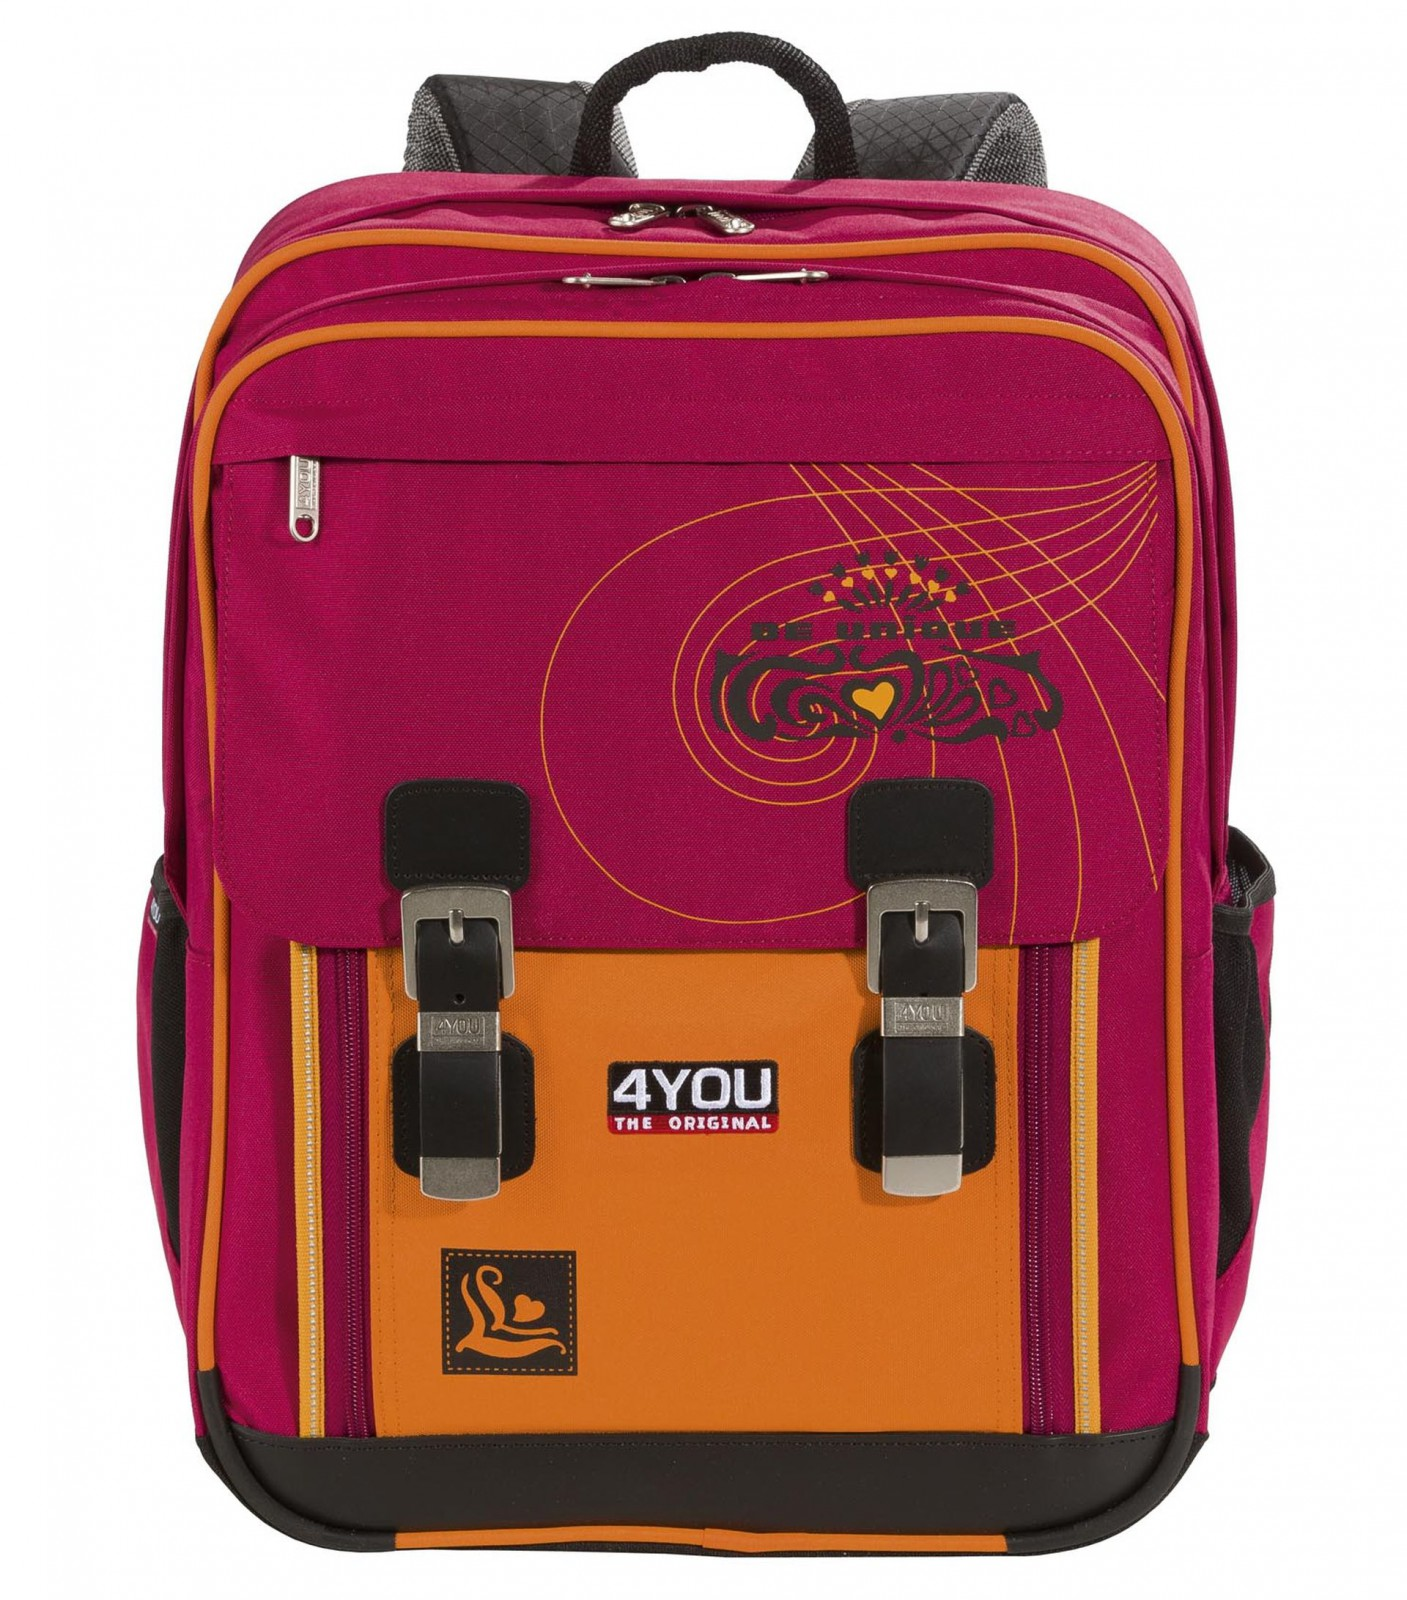 School bags online cash on delivery -  Credit Card Cash On Delivery Invoice And Sofort Berweisung De4you Flash Srs Classic Plus School Backpack 707 55 90 Only Possible If You Pay By